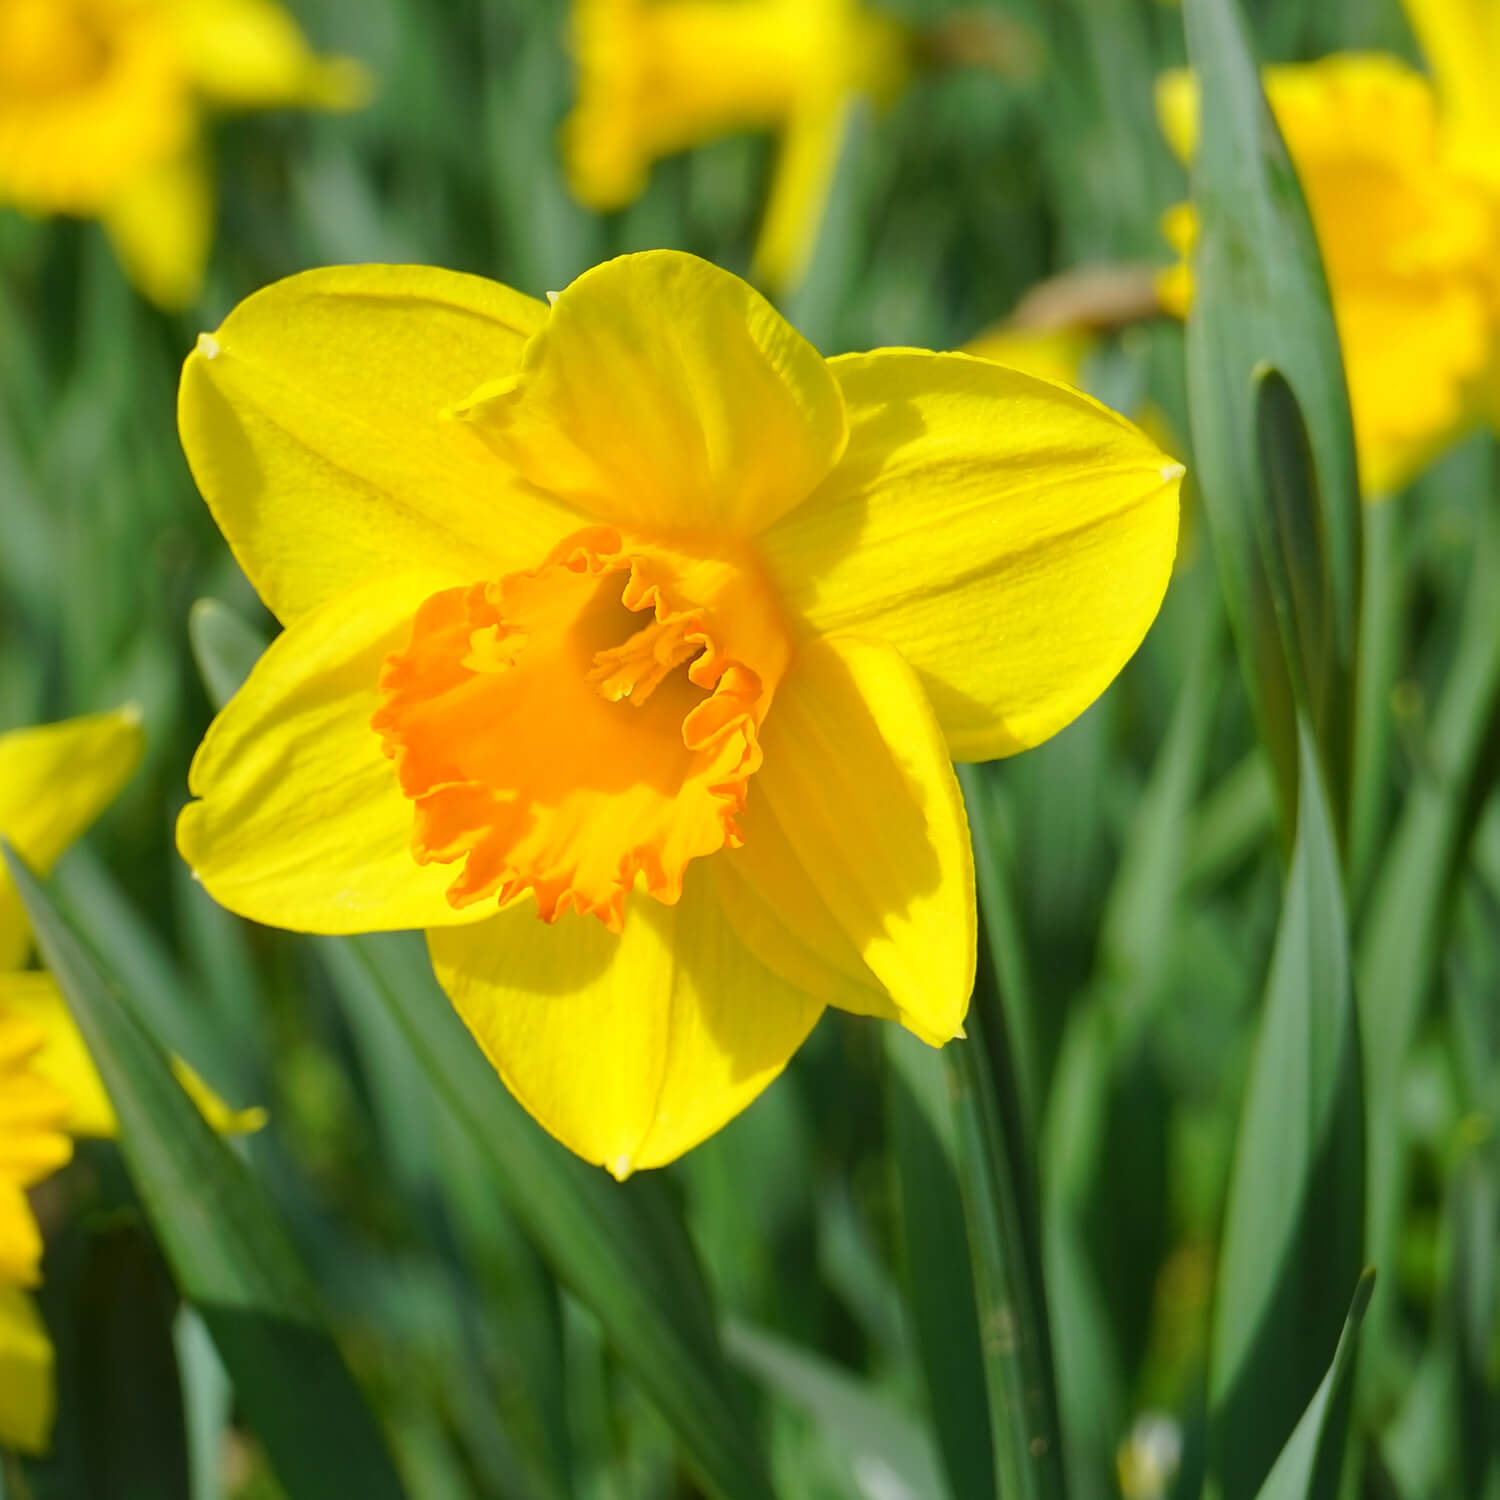 daffodils (Narcissus) | Perennial Flowers All Season: Perennial Garden Design Guide for Blooms in Spring Summer and Fall